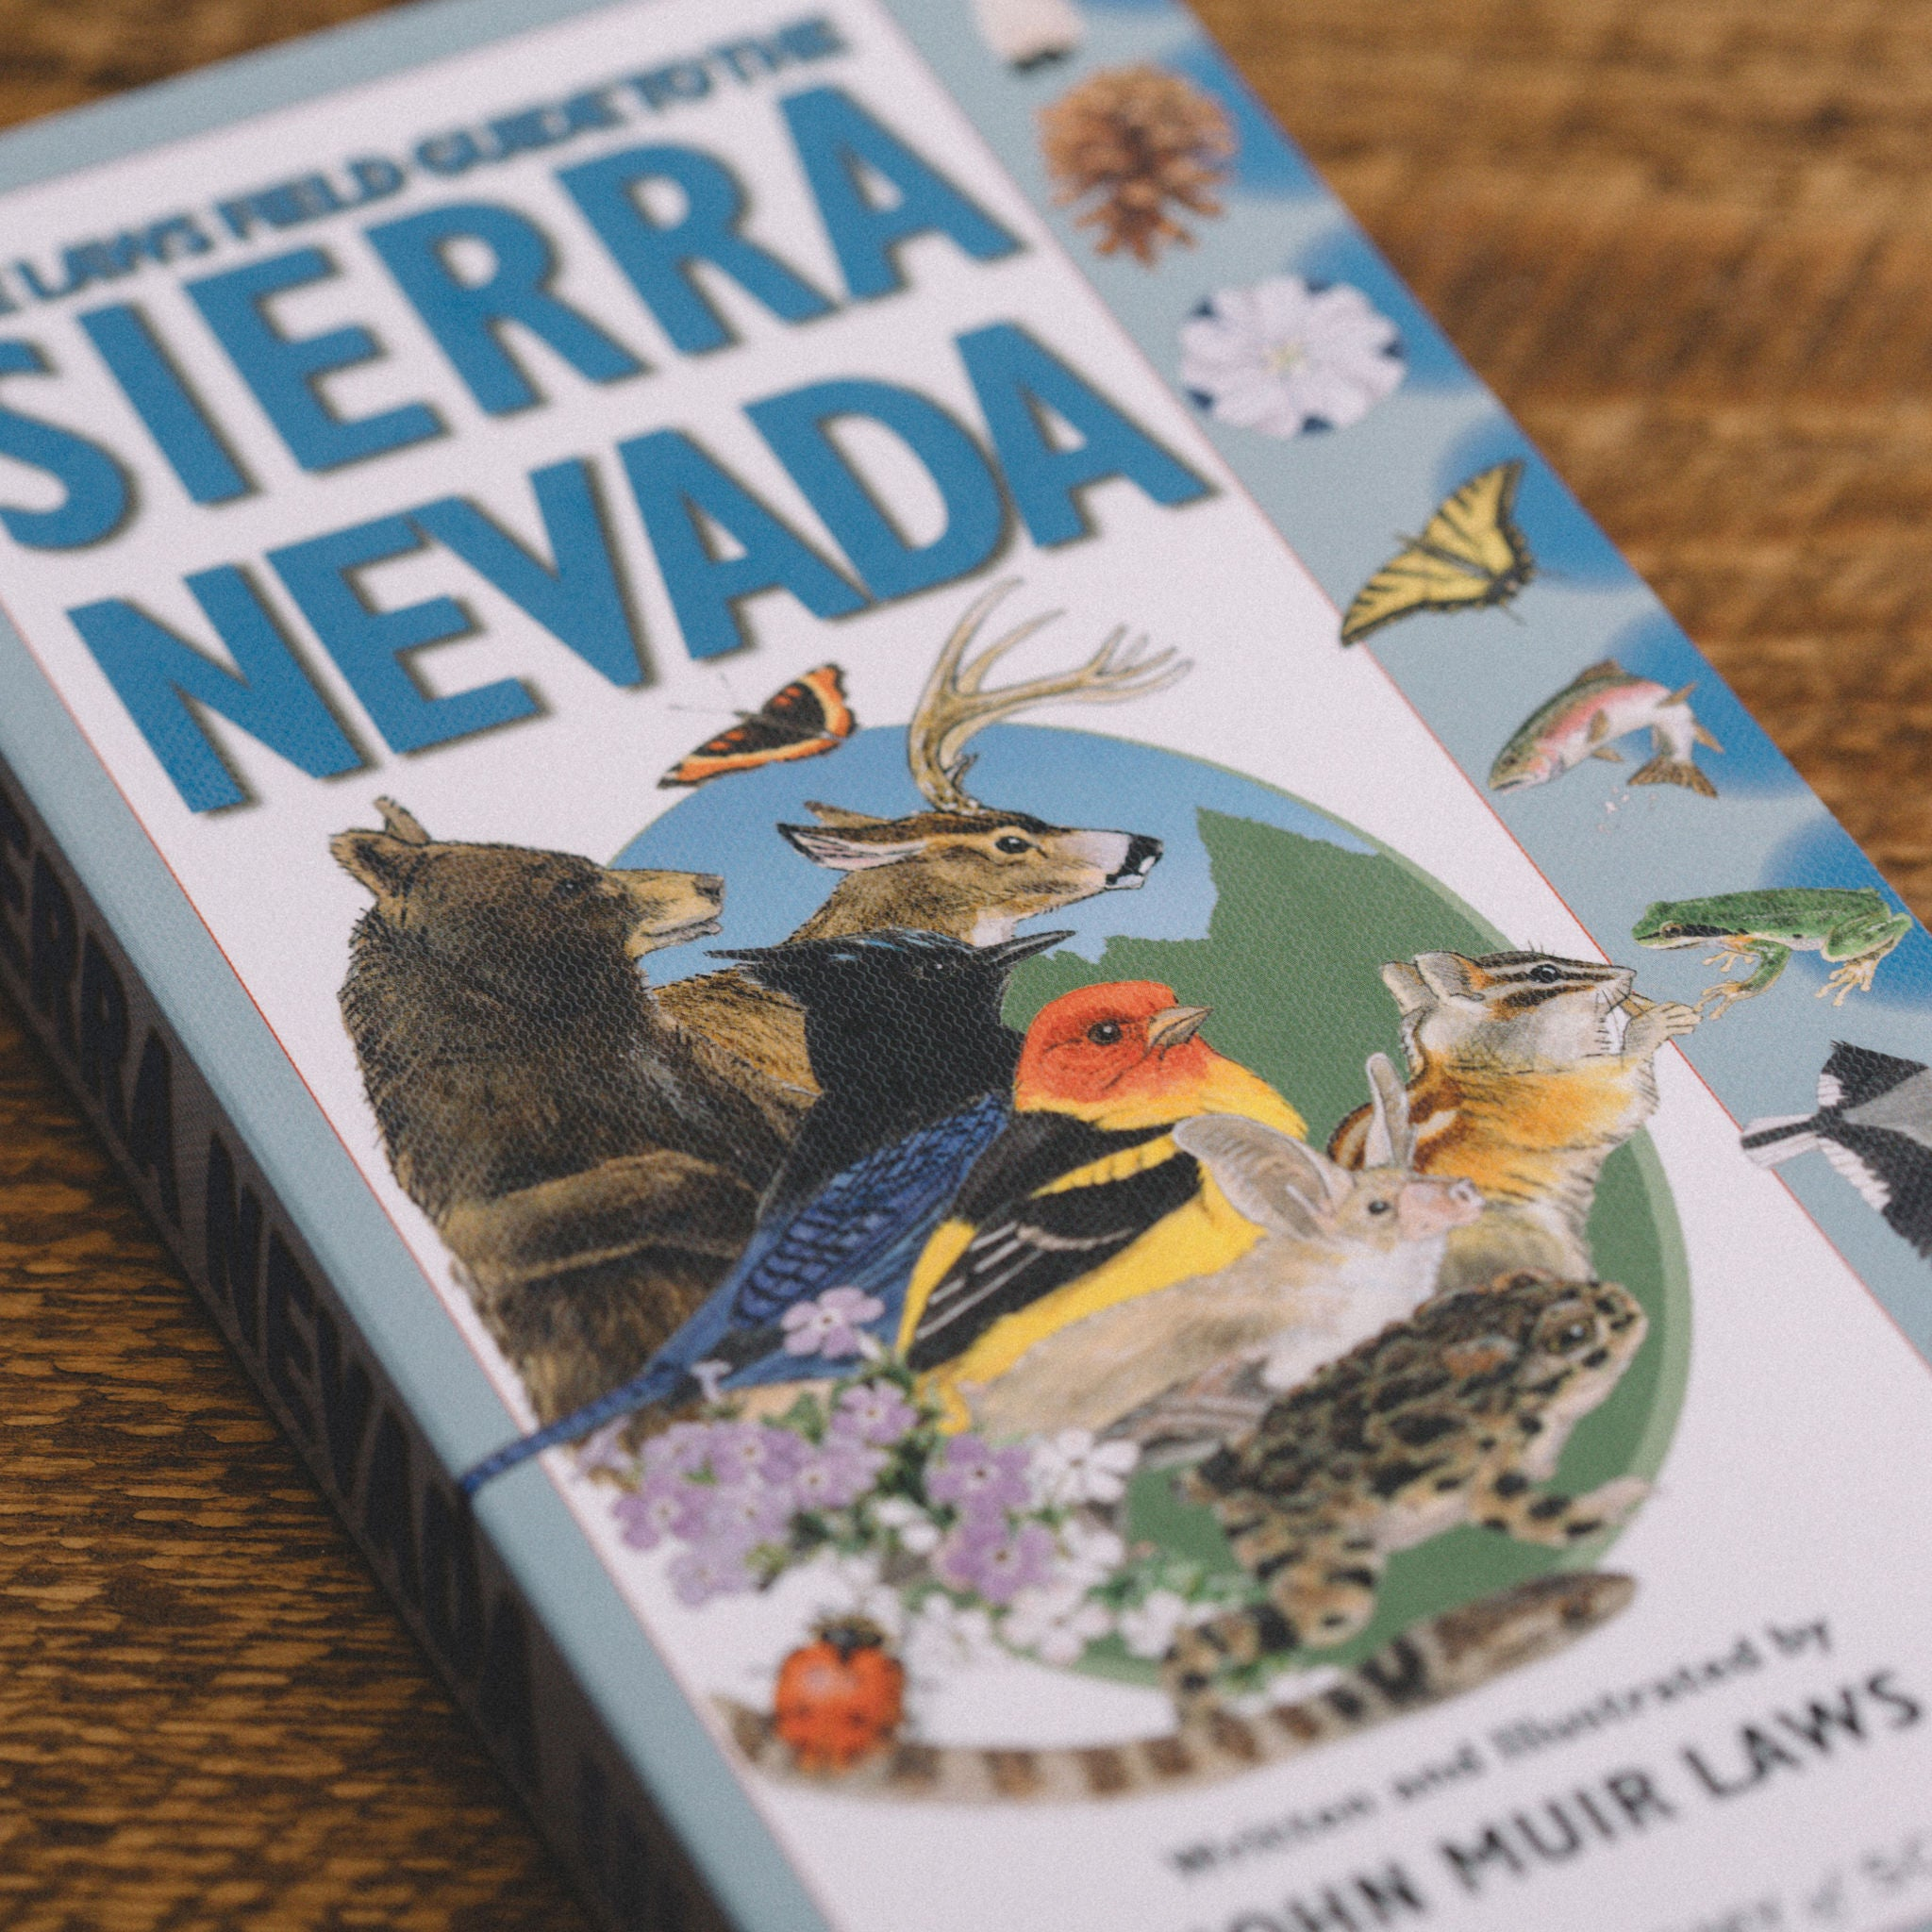 THE LAWS FIELD GUIDE TO THE SIERRA NEVADA || JOHN MUIR LAWS